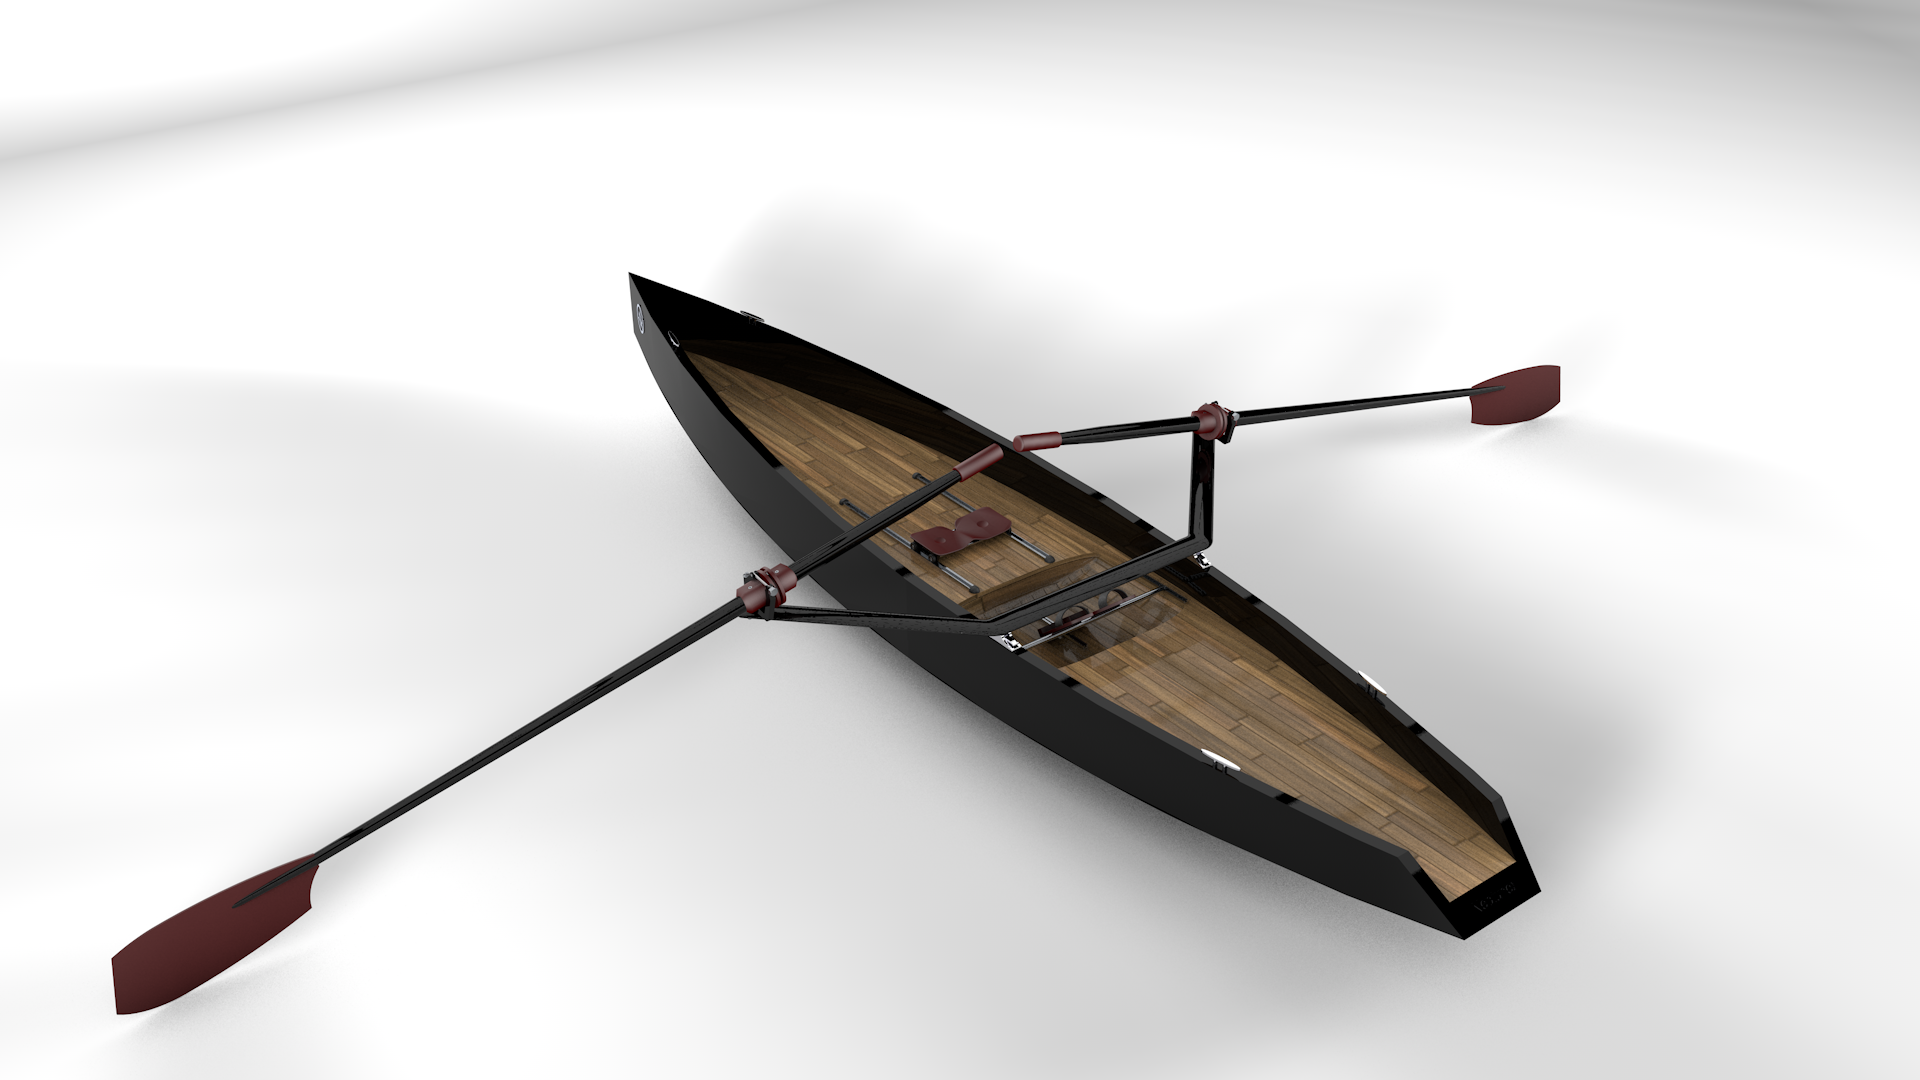 The final design of the Neptune Deluxe Black Rowboat